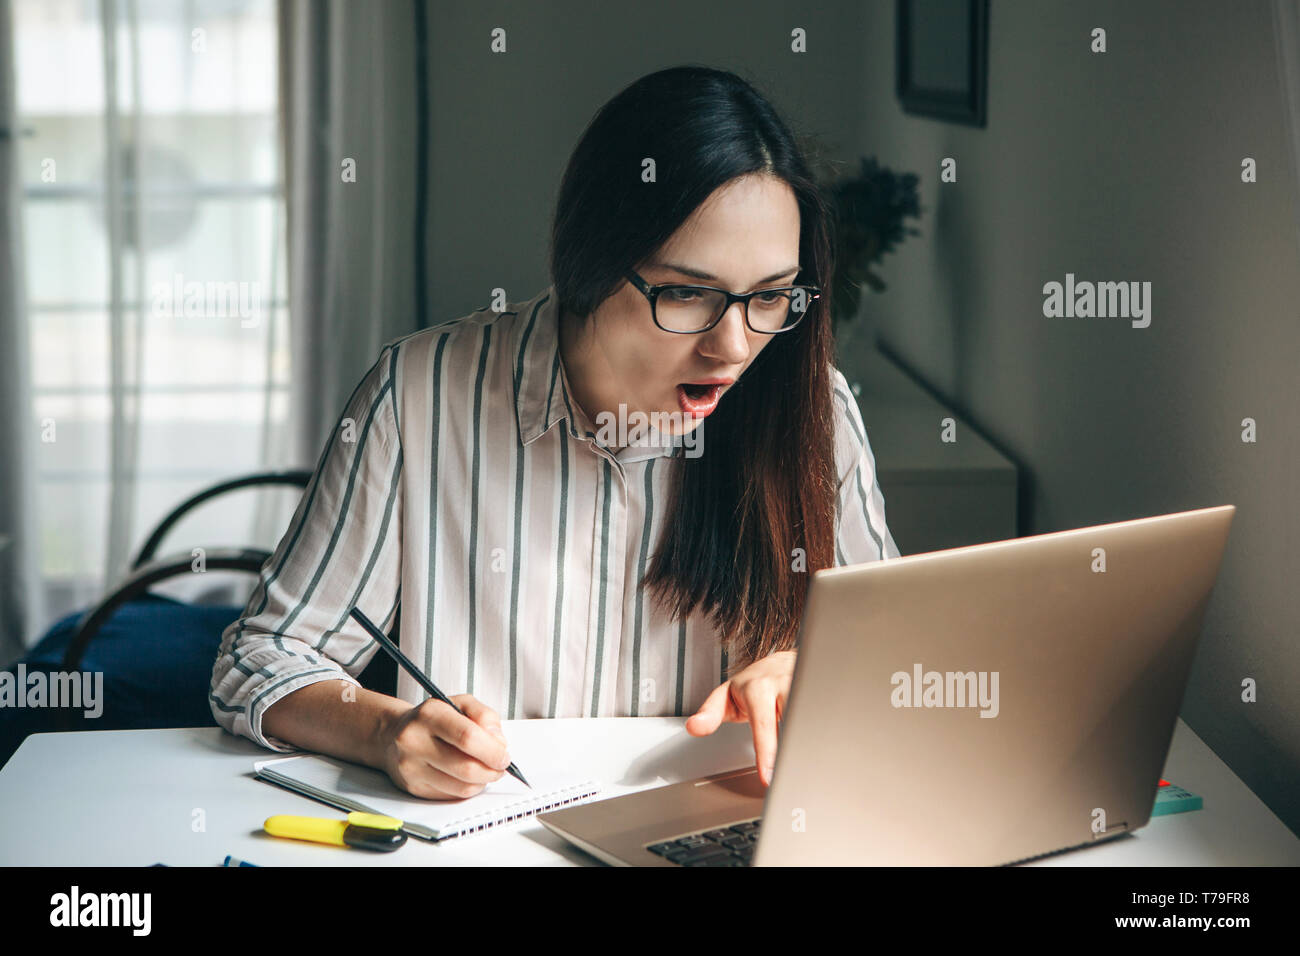 A young beautiful student girl does homework or works in a home office. She is surprised by the news or she has found an unexpected solution. Stock Photo